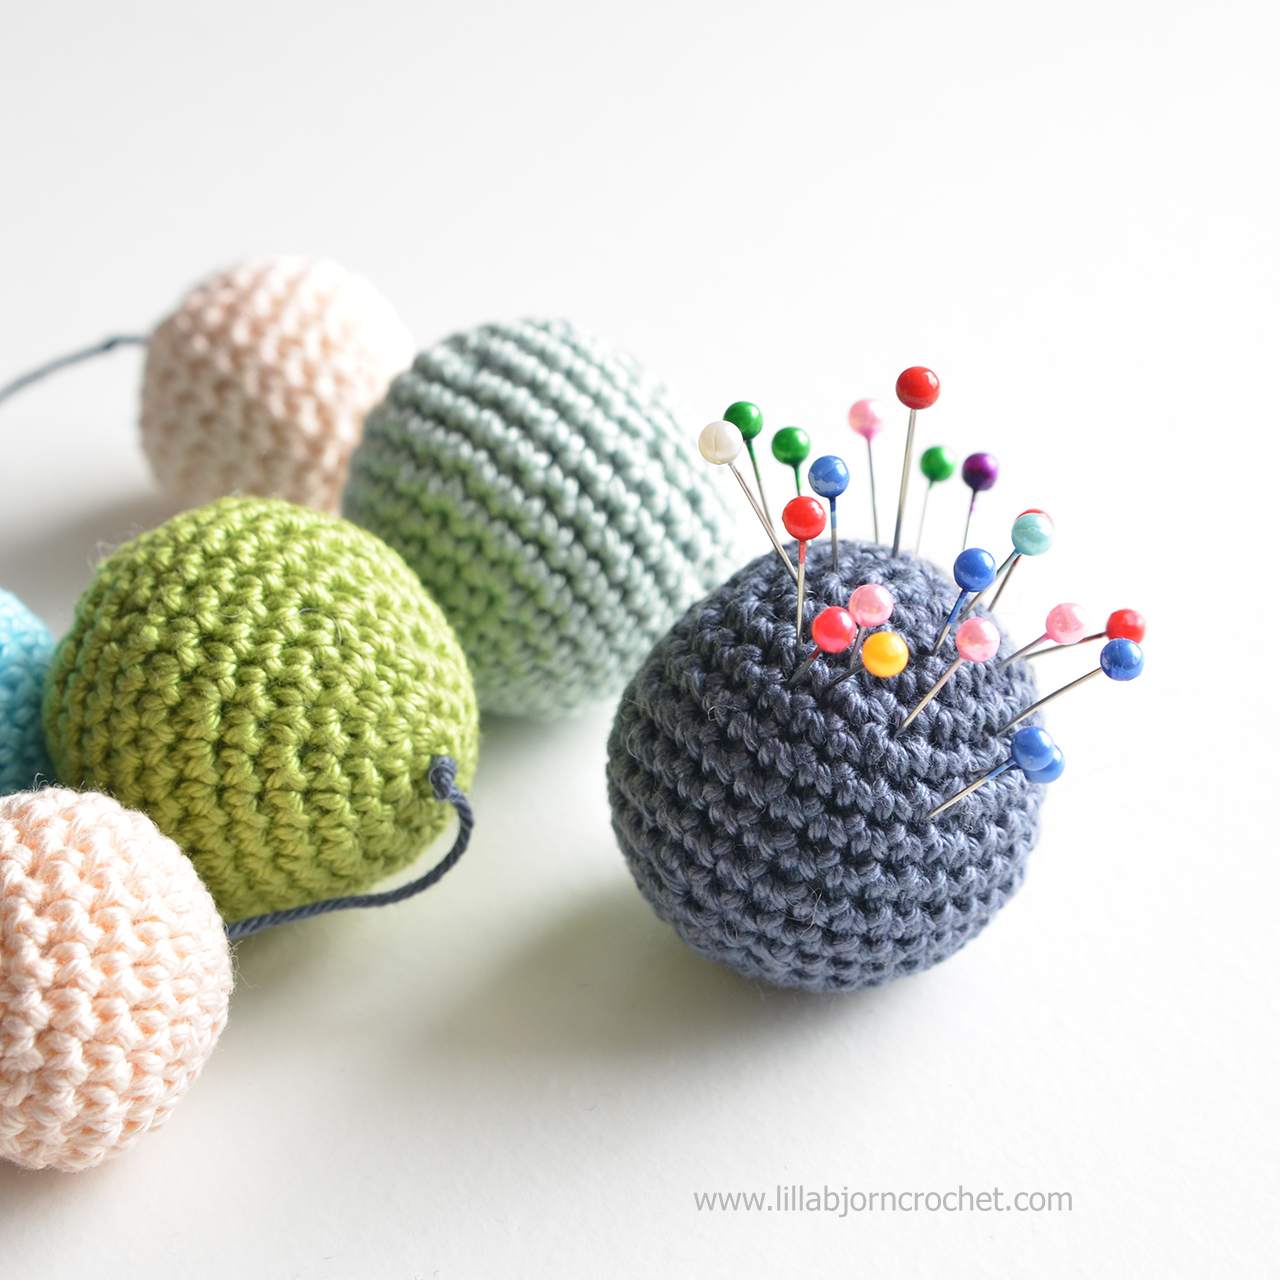 Crochet Sphere How To Make Baubles Season Is Coming Lillabjrns Crochet World